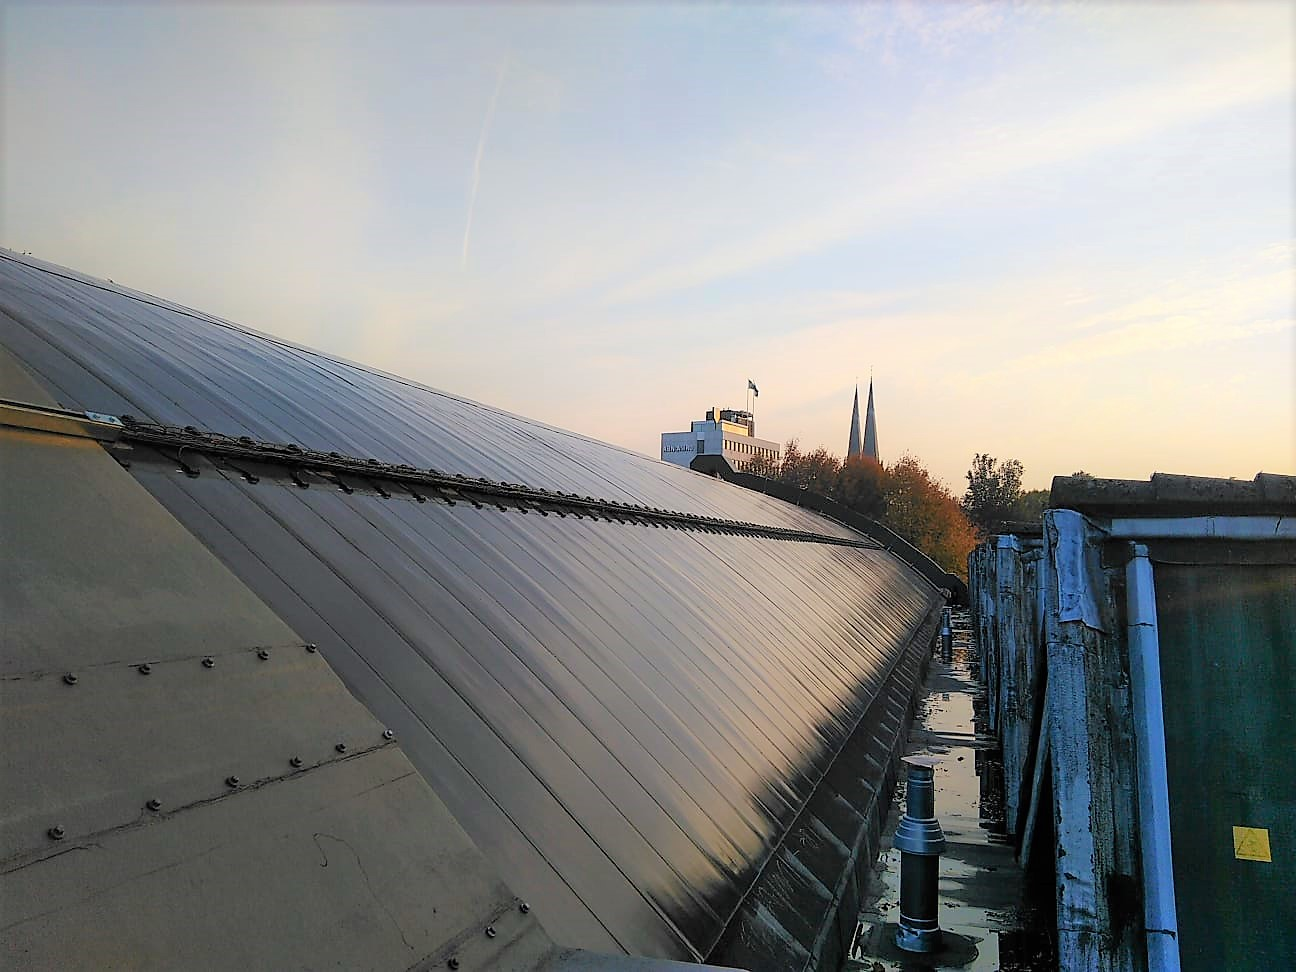 eFlex on the curved roof of a historical building